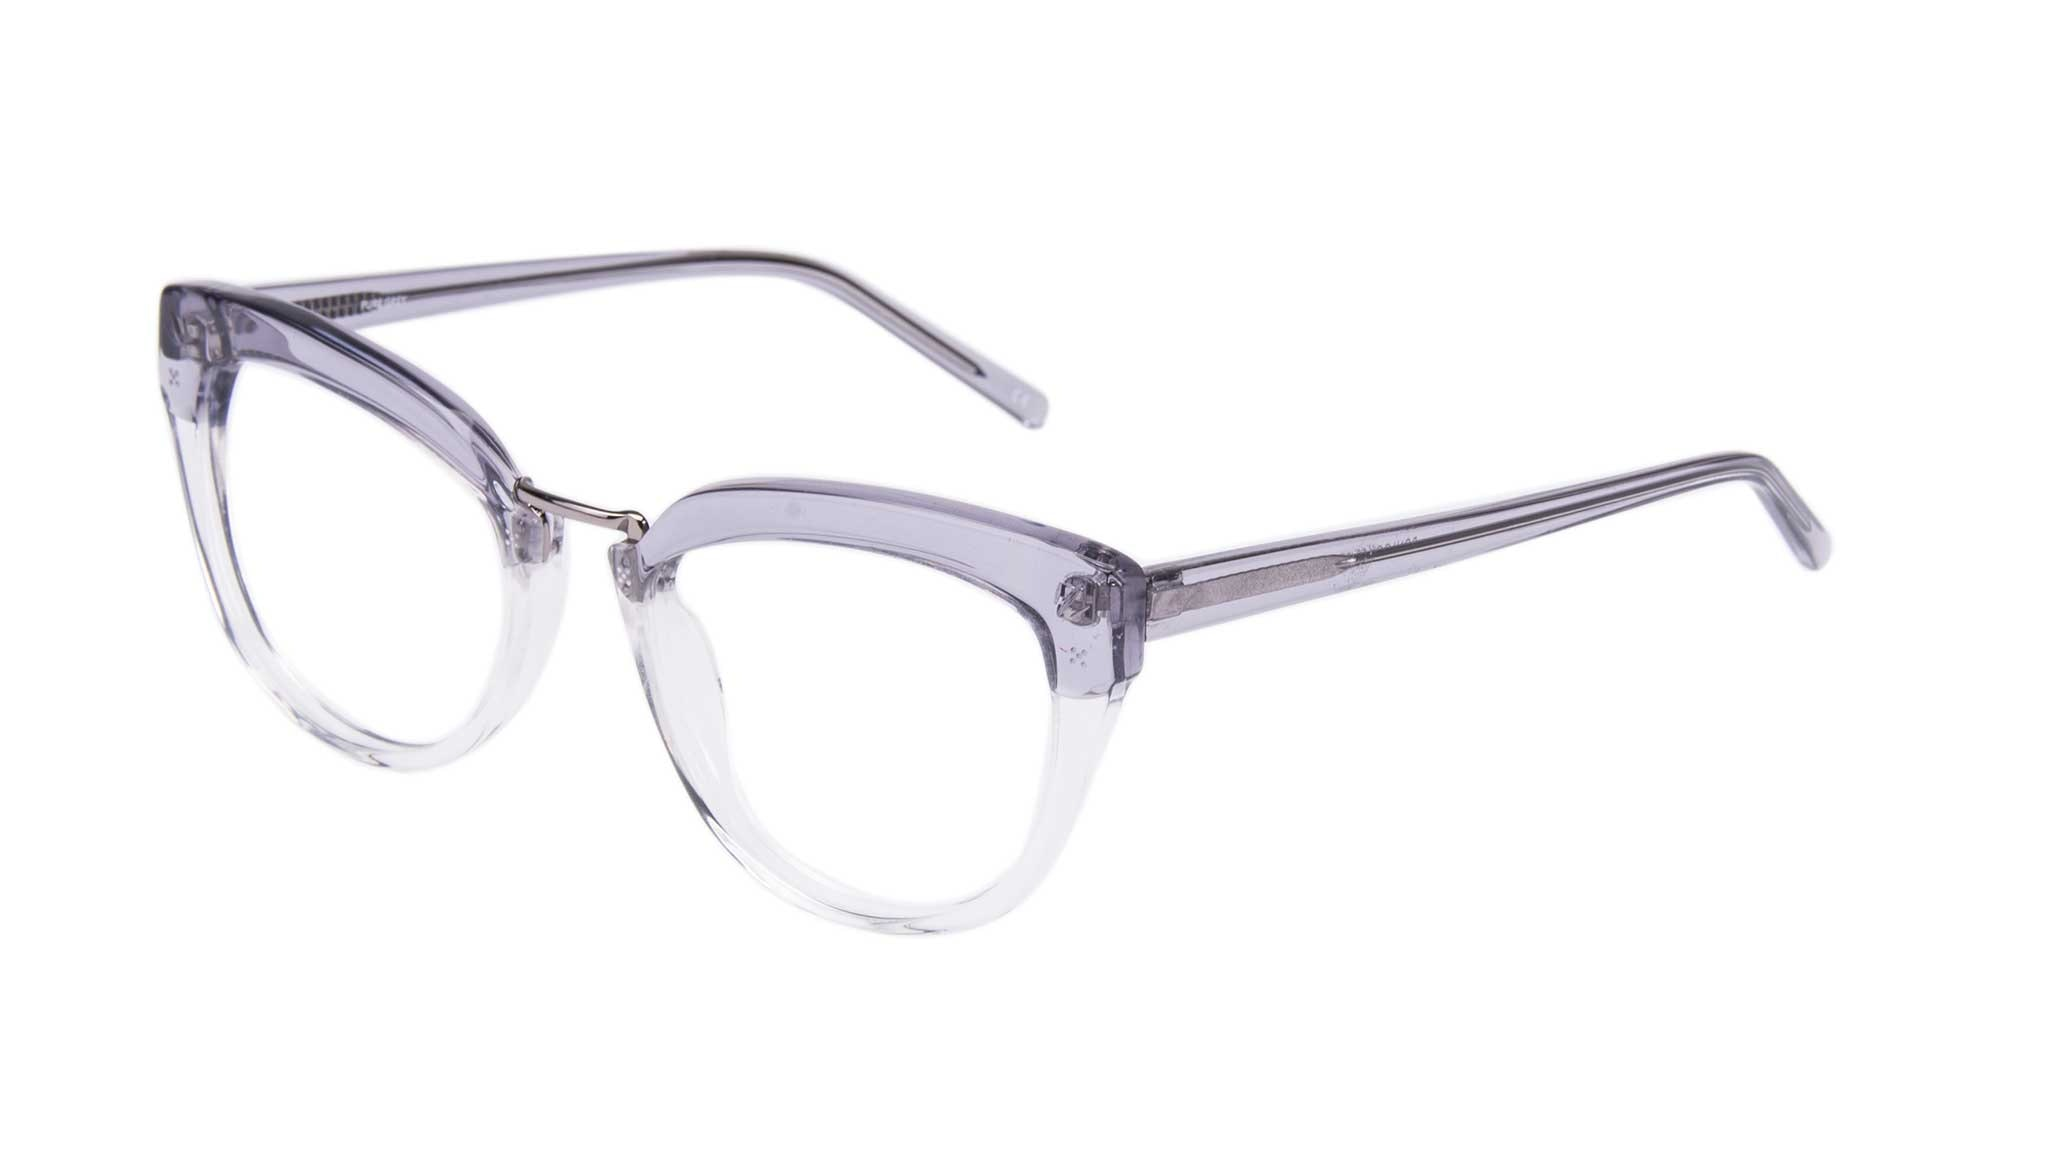 Affordable Fashion Glasses Cat Eye Eyeglasses Women Pure Grey Tilt